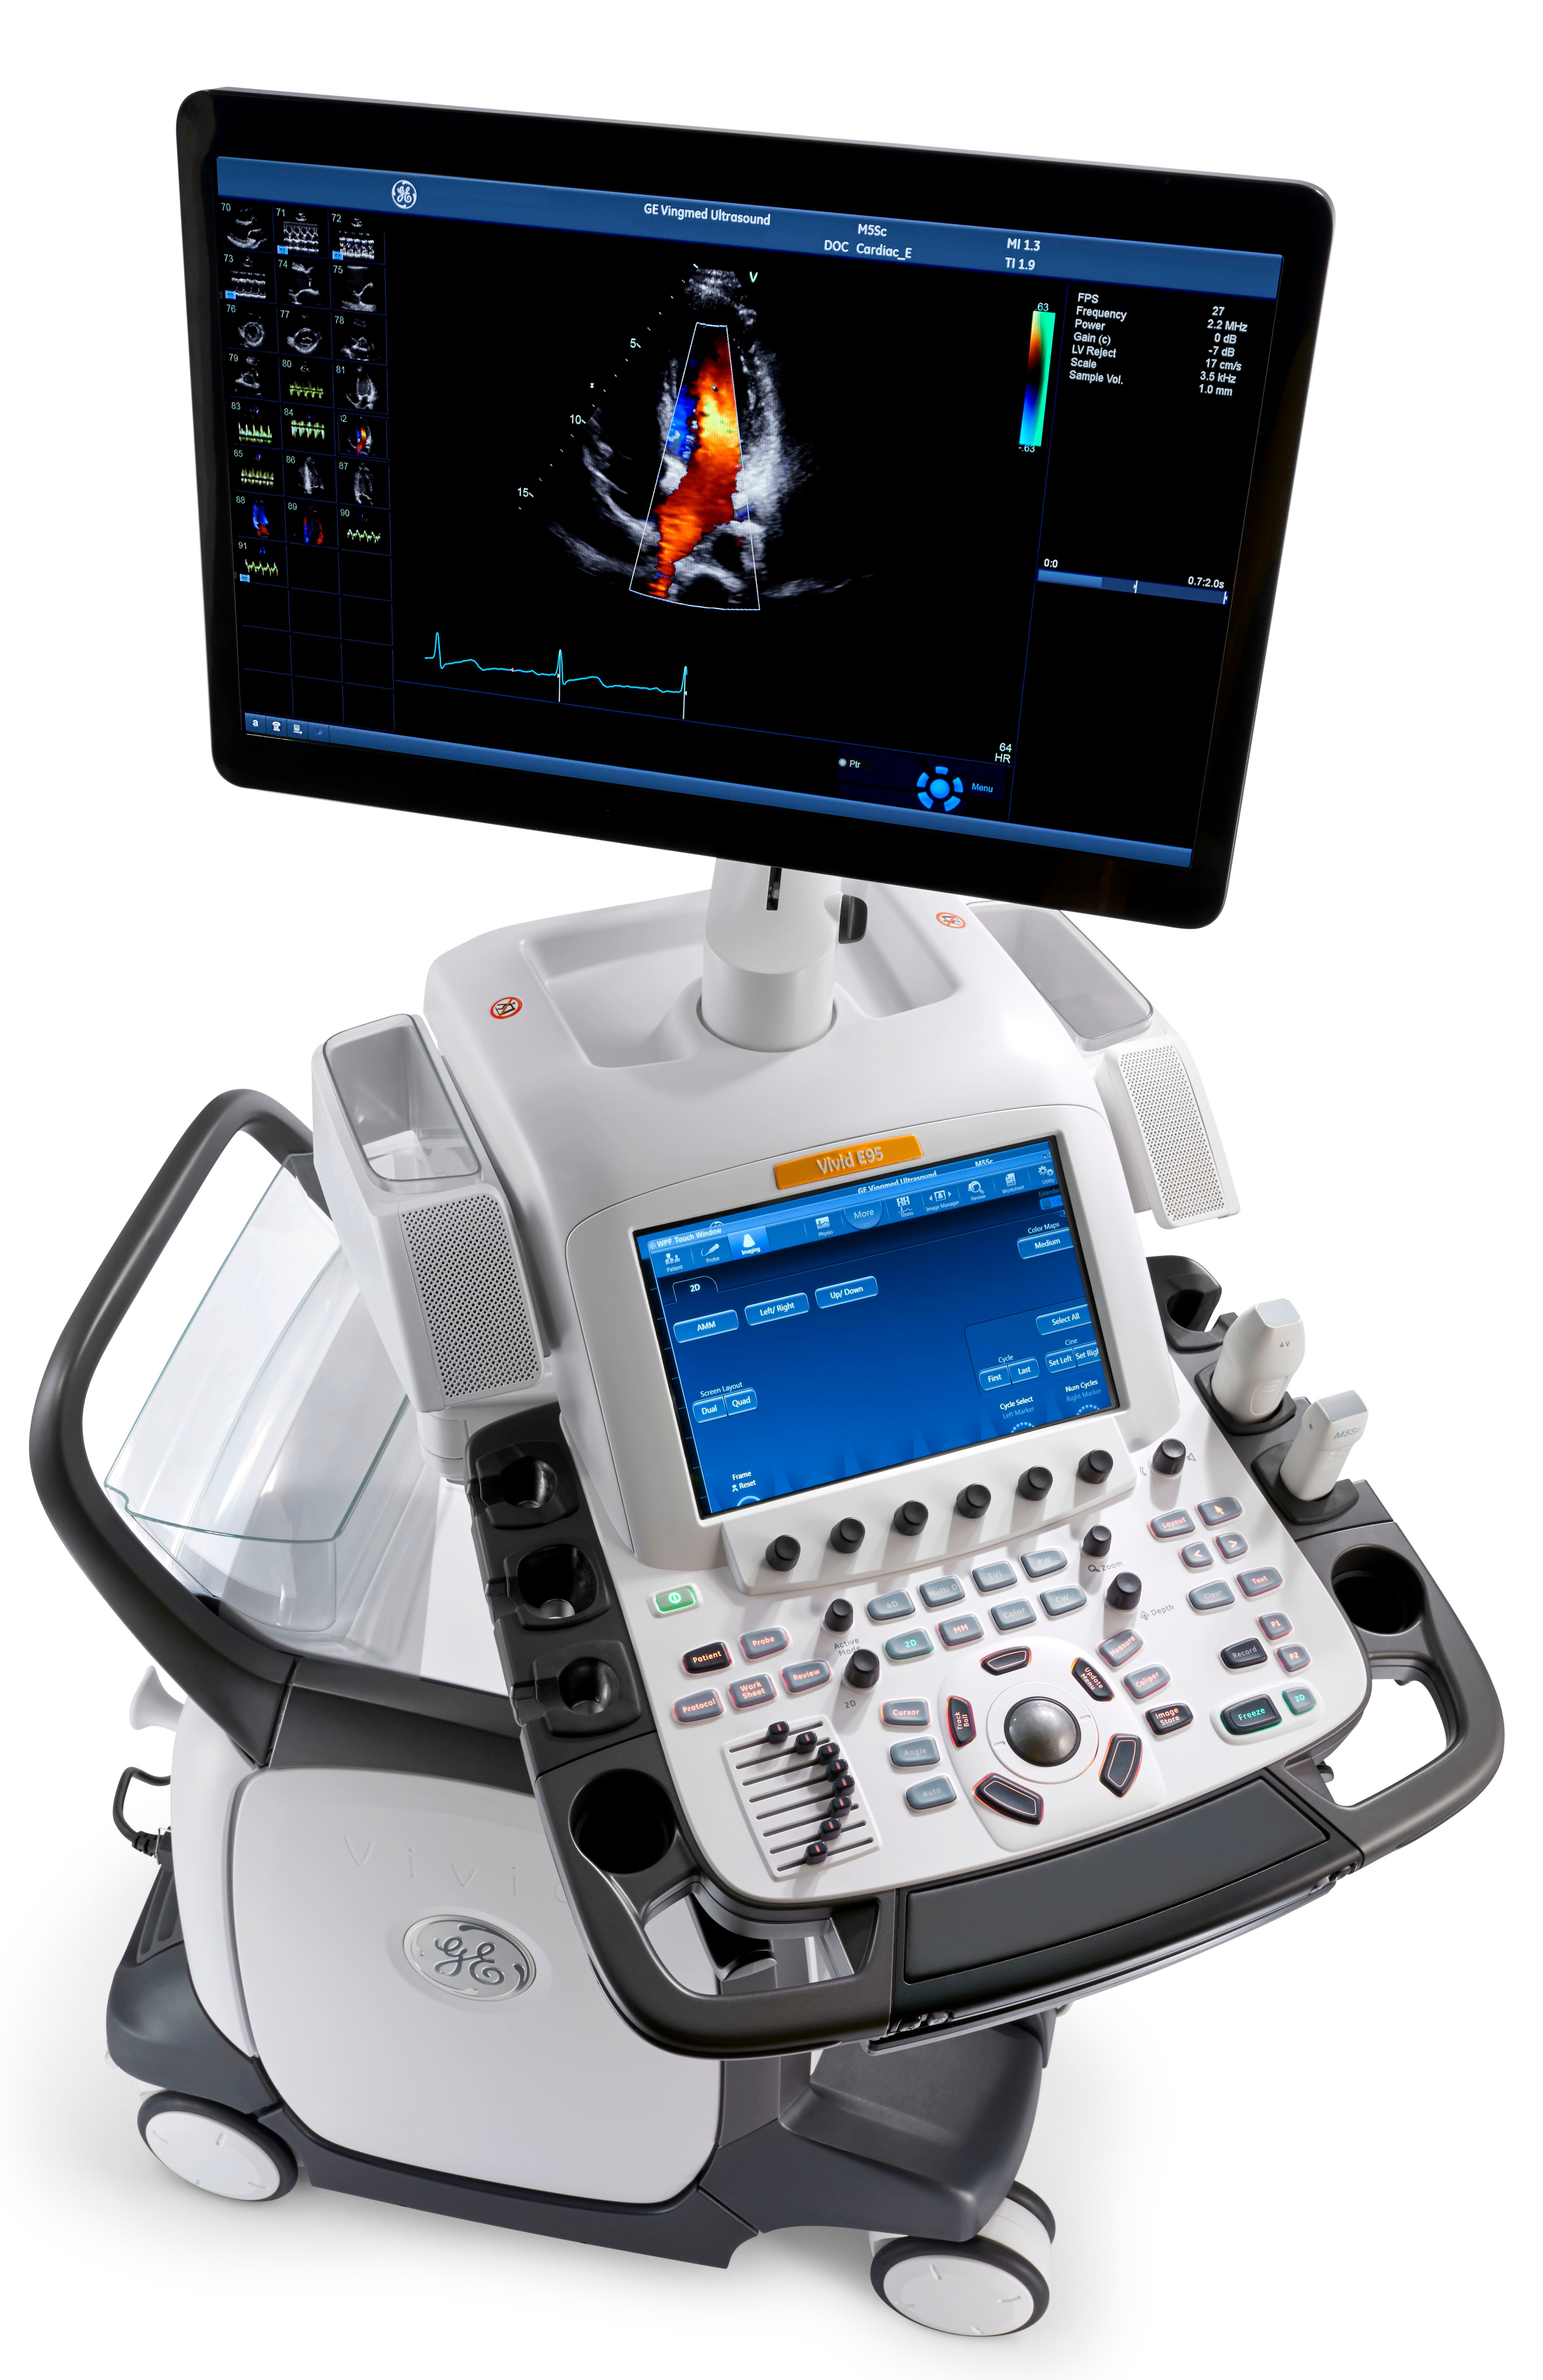 The Vivid E95 is one of the most advanced ultrasound platforms GE Healthcare offers.